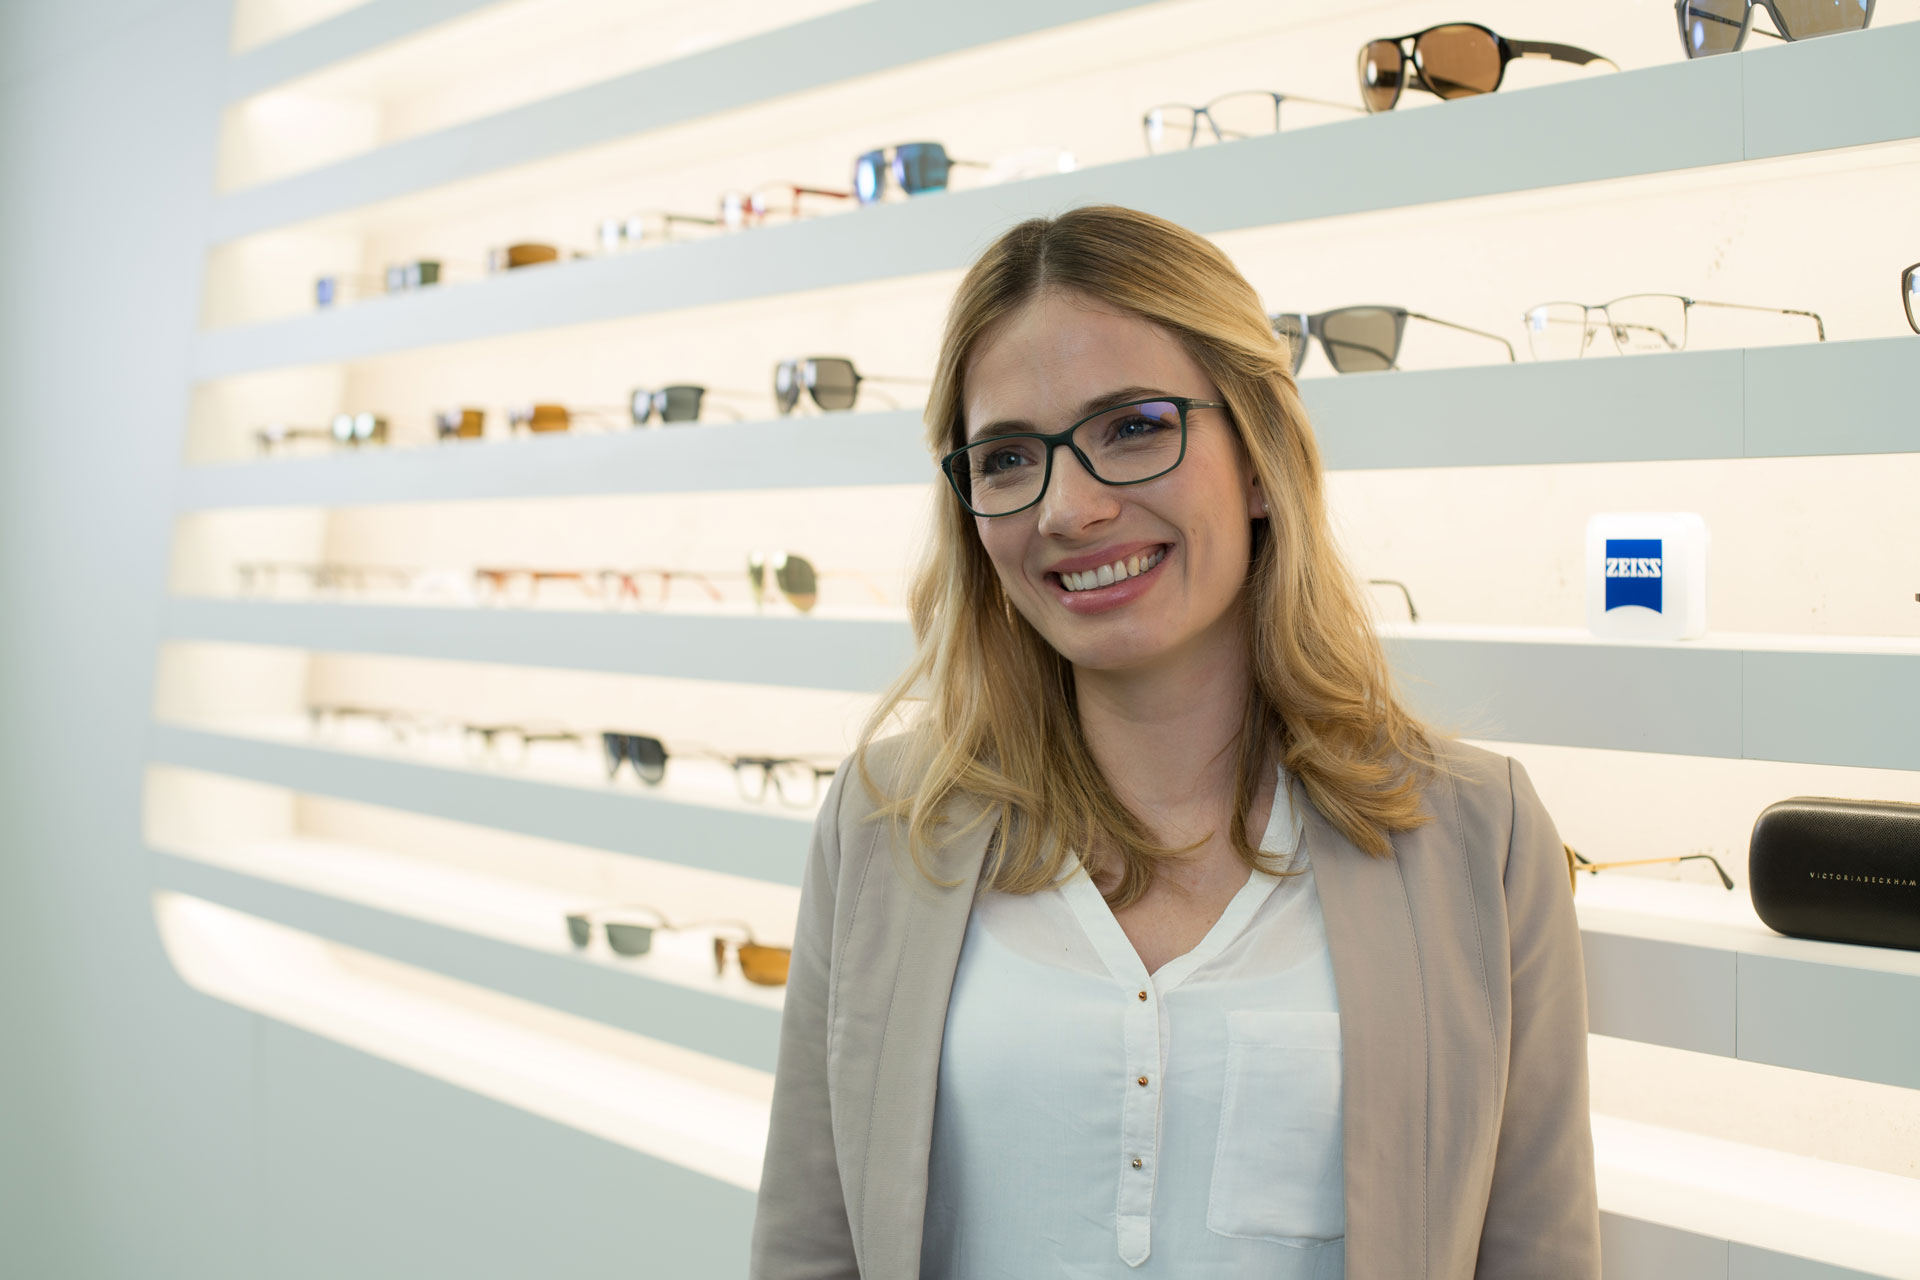 Tips For Buying Glasses How To Find The Correct Ones For You